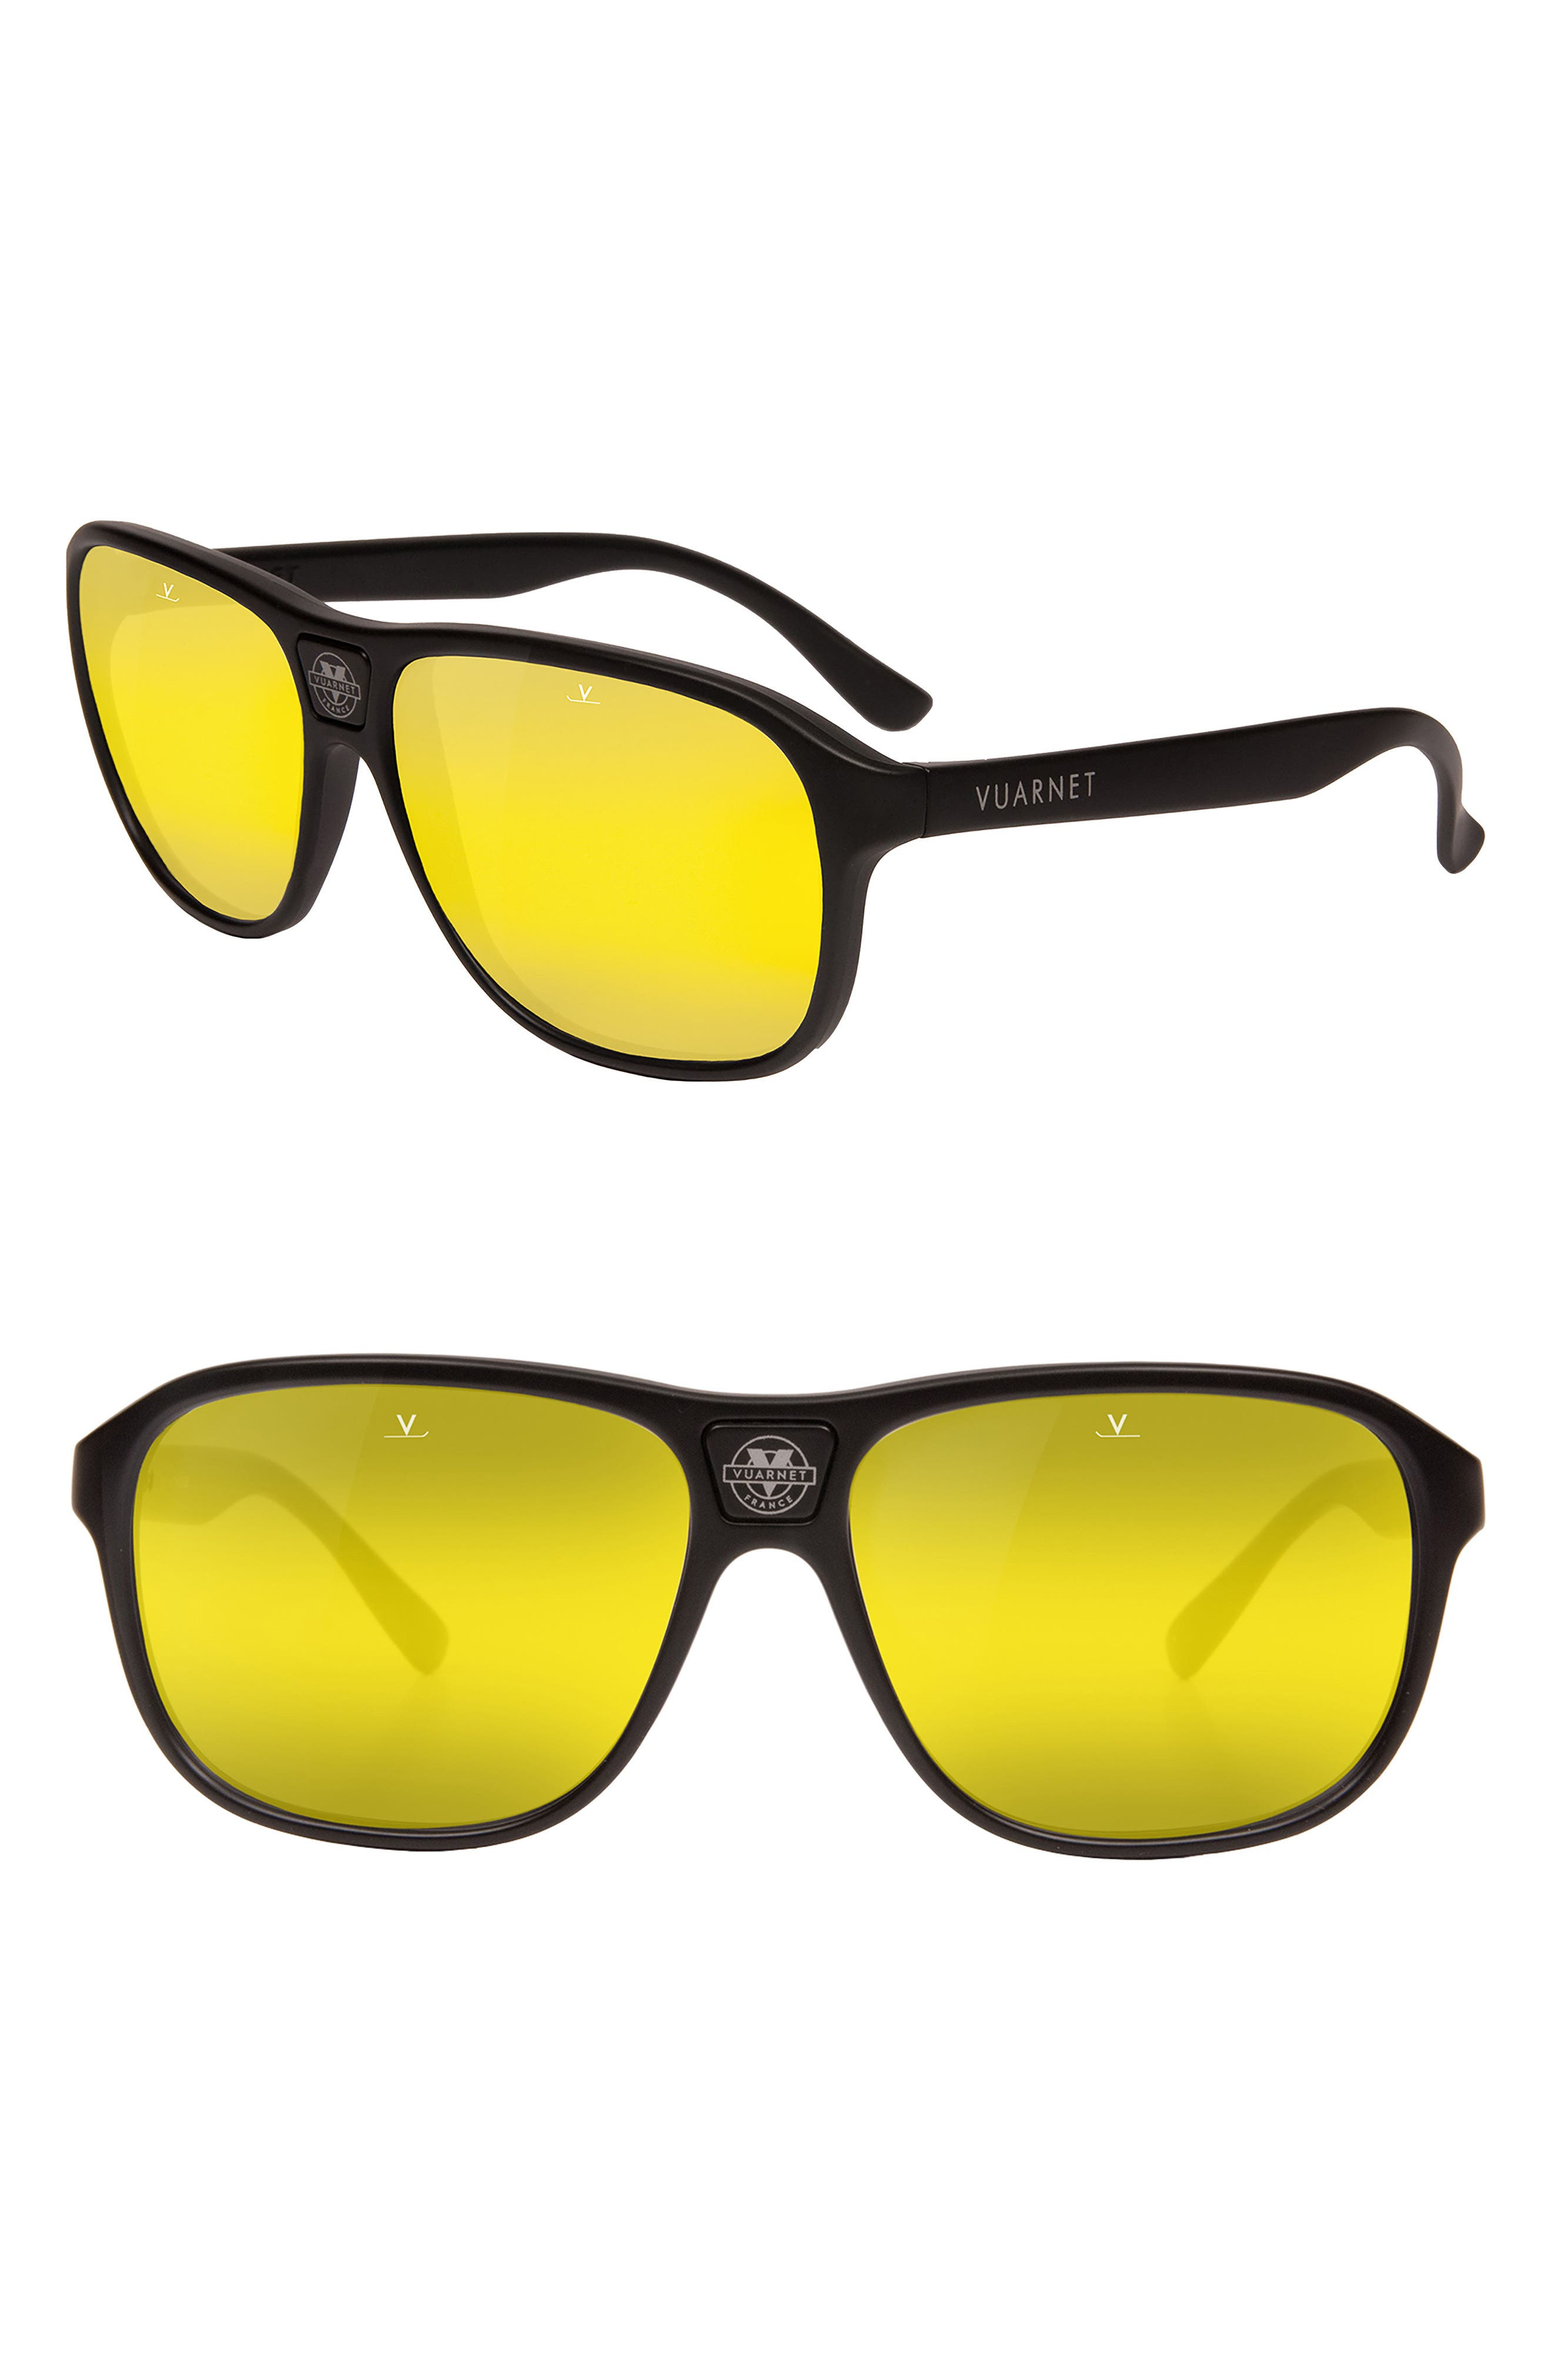 Legends 03 56mm Sunglasses,                             Main thumbnail 1, color,                             Nightlynx